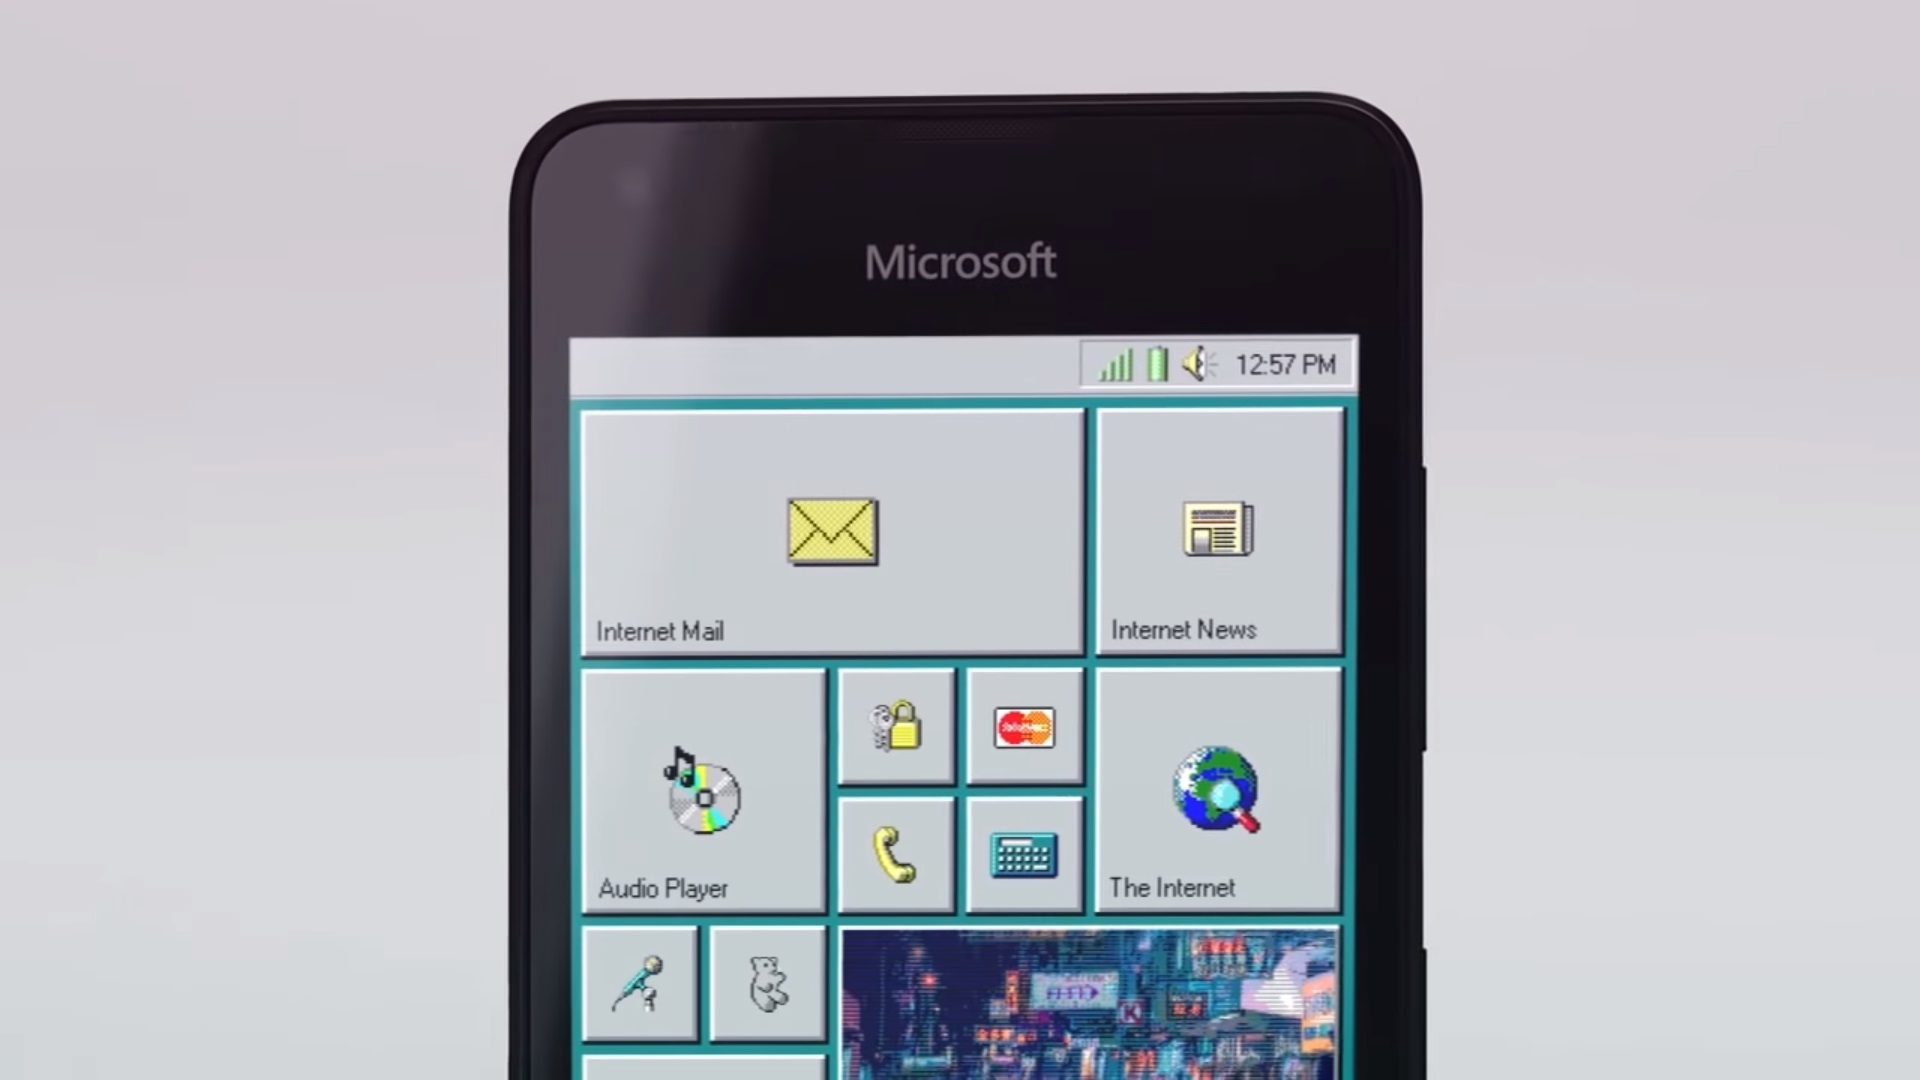 watch-microsoft-unveils-windows-95-mobile-in-awesome-parody-social.jpg